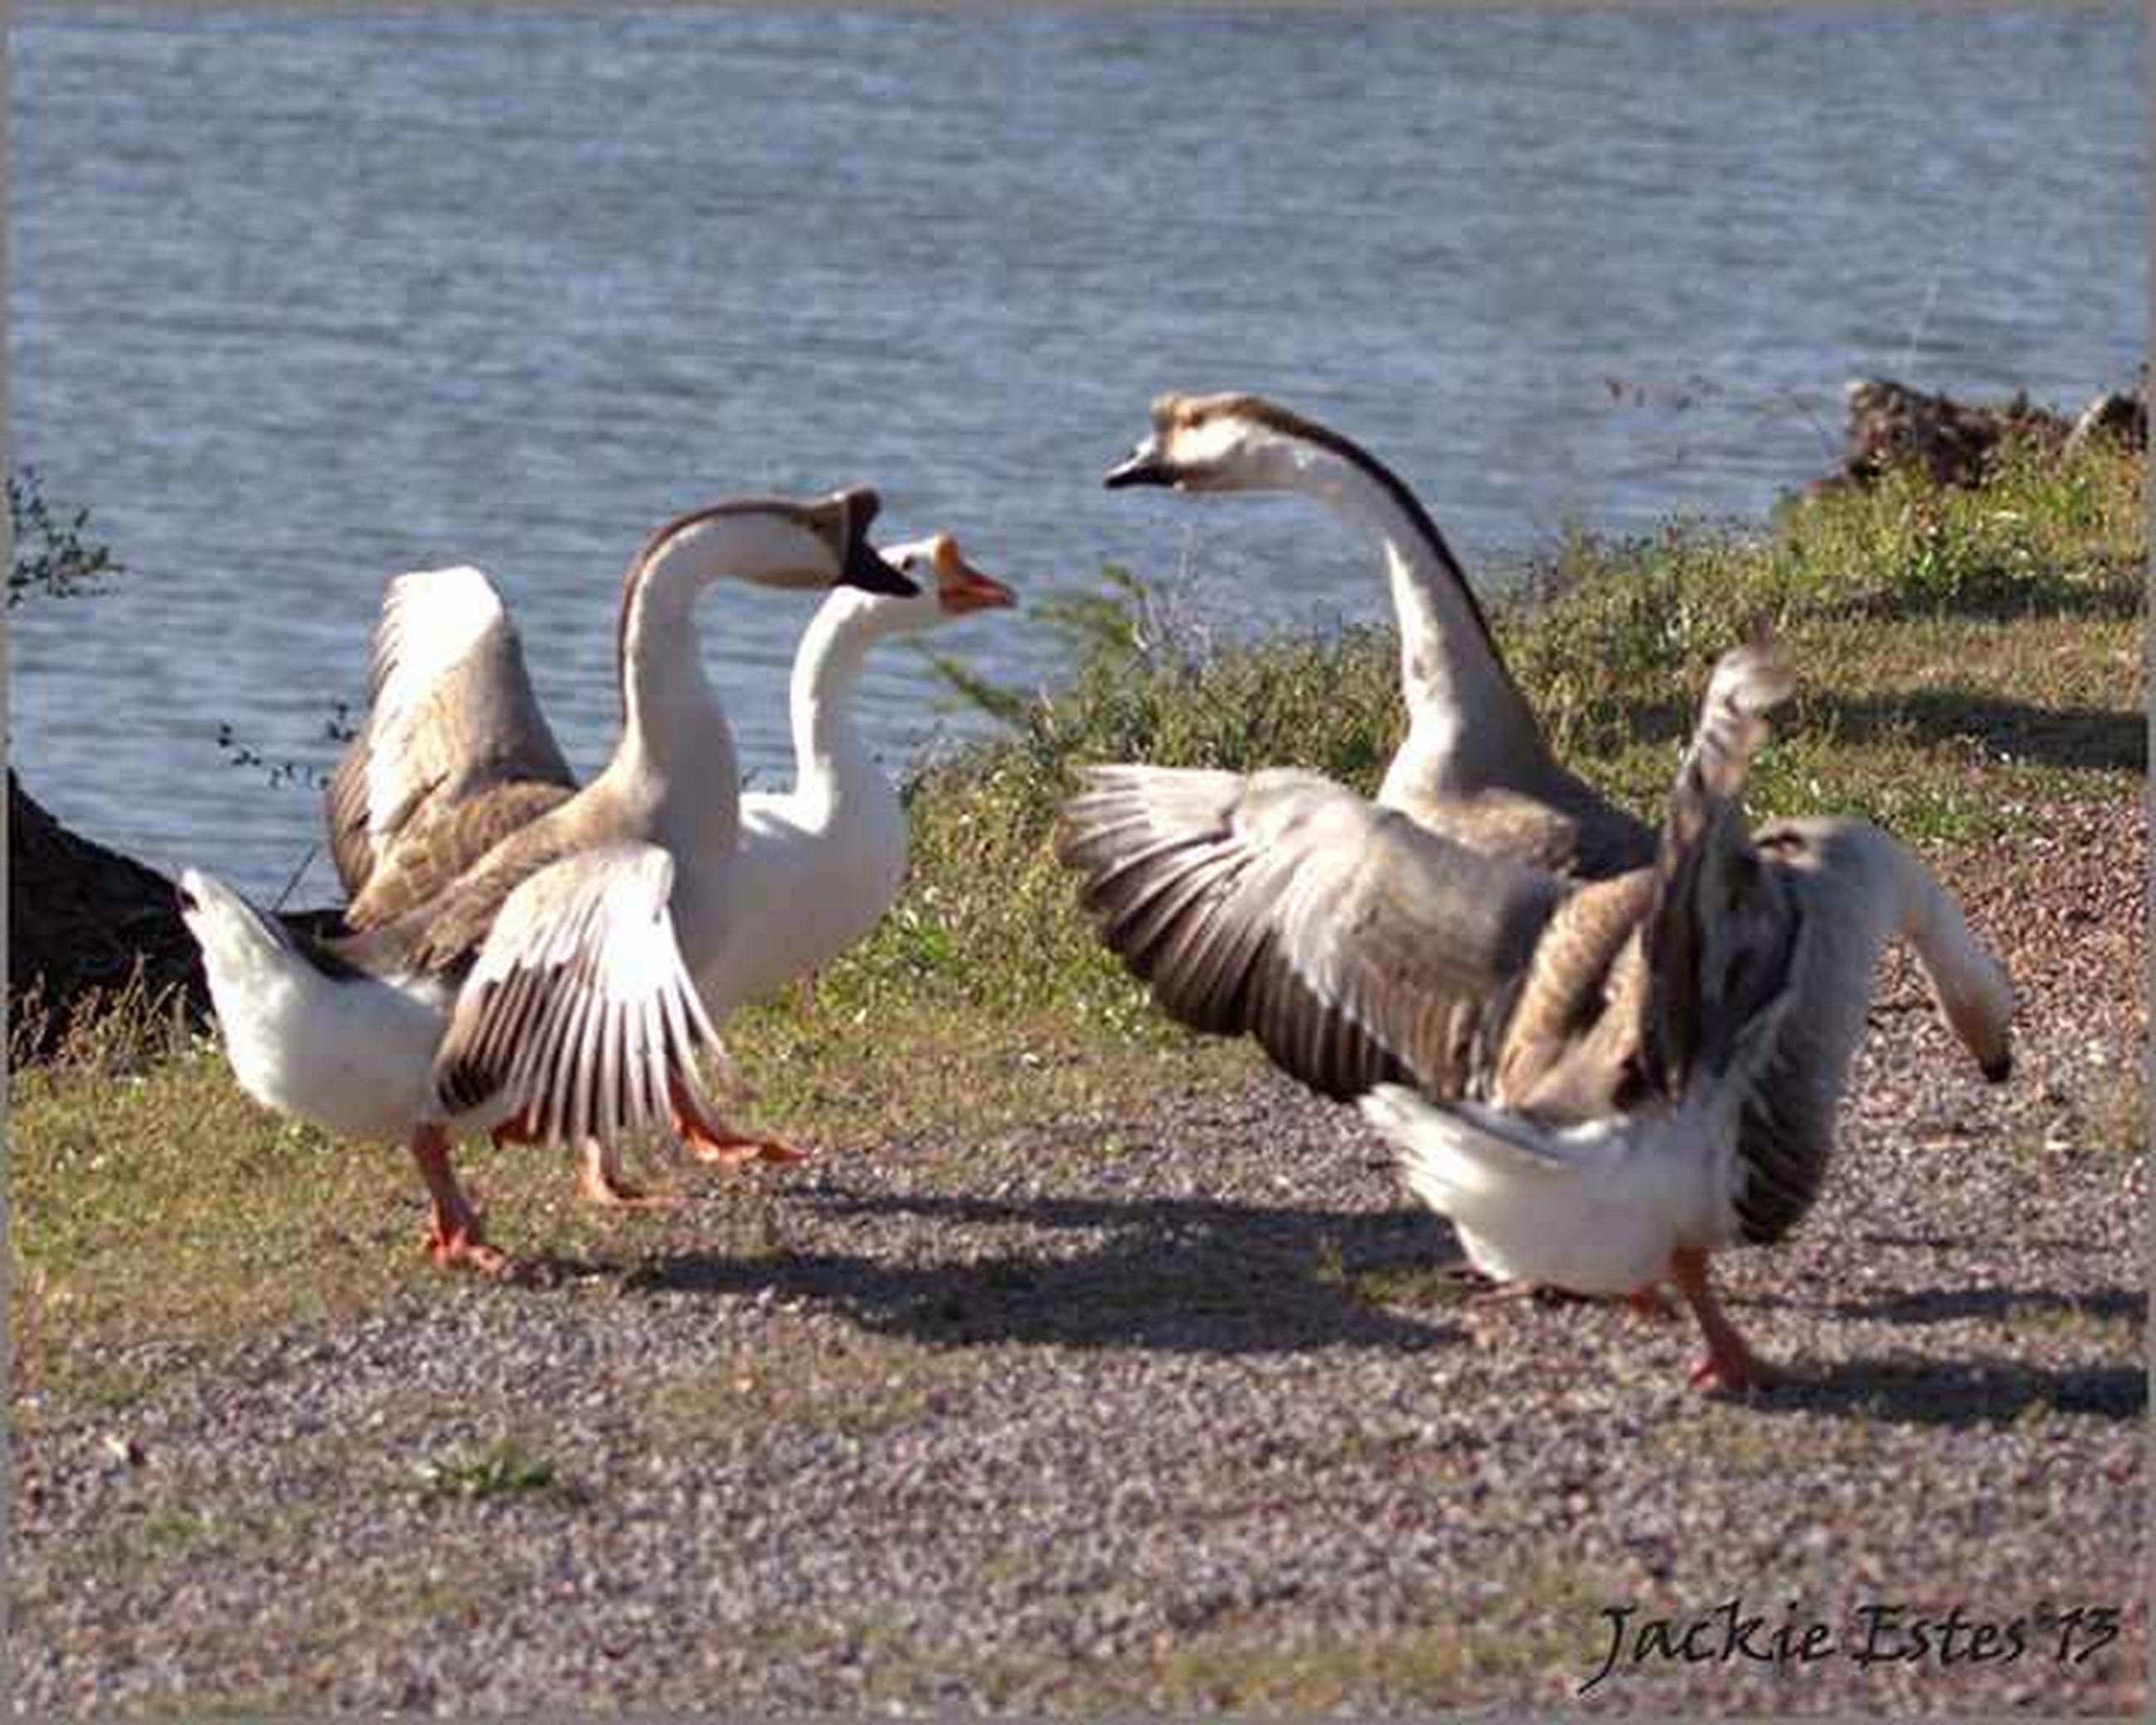 bird, animal themes, animals in the wild, wildlife, togetherness, water, nature, two animals, lake, zoology, sunlight, side view, outdoors, no people, duck, vertebrate, day, grass, lakeshore, goose